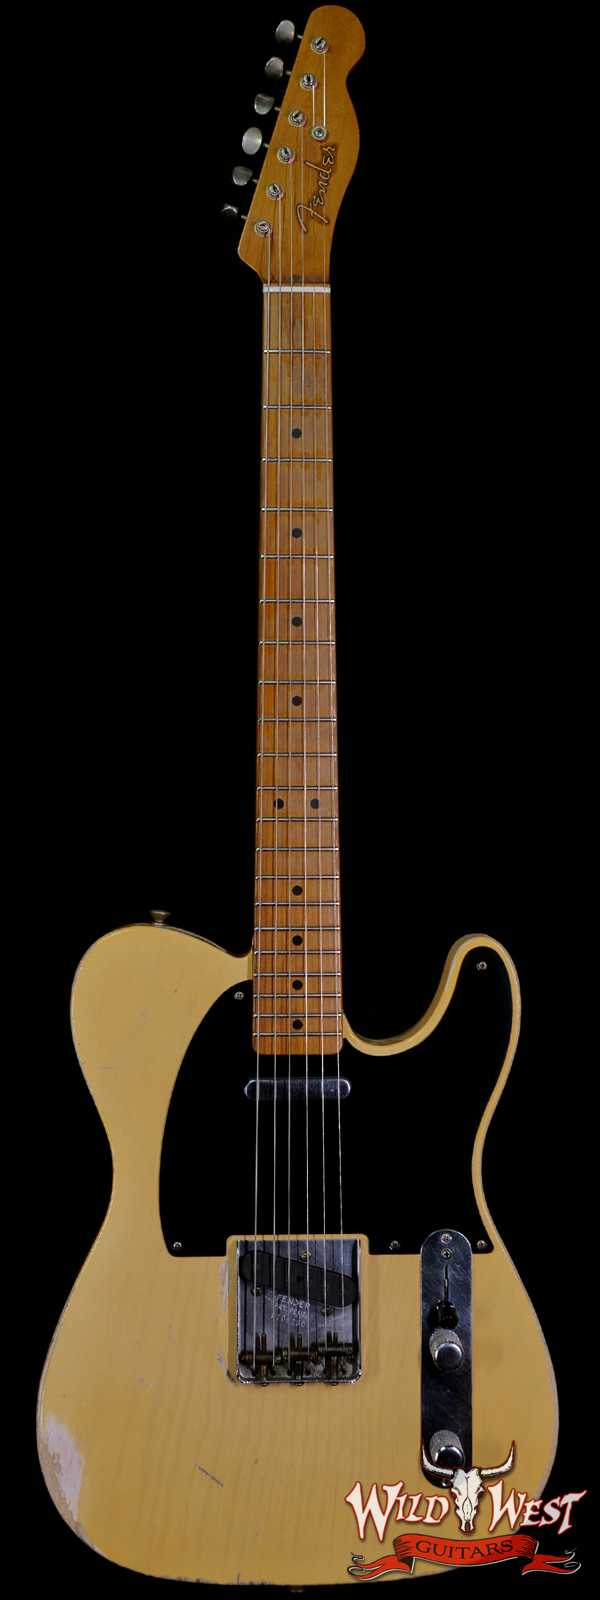 Fender Custom Shop Todd Krause Masterbuilt 1951 Nocaster Relic Roasted Maple Neck Hand-Wound Pickups Blonde